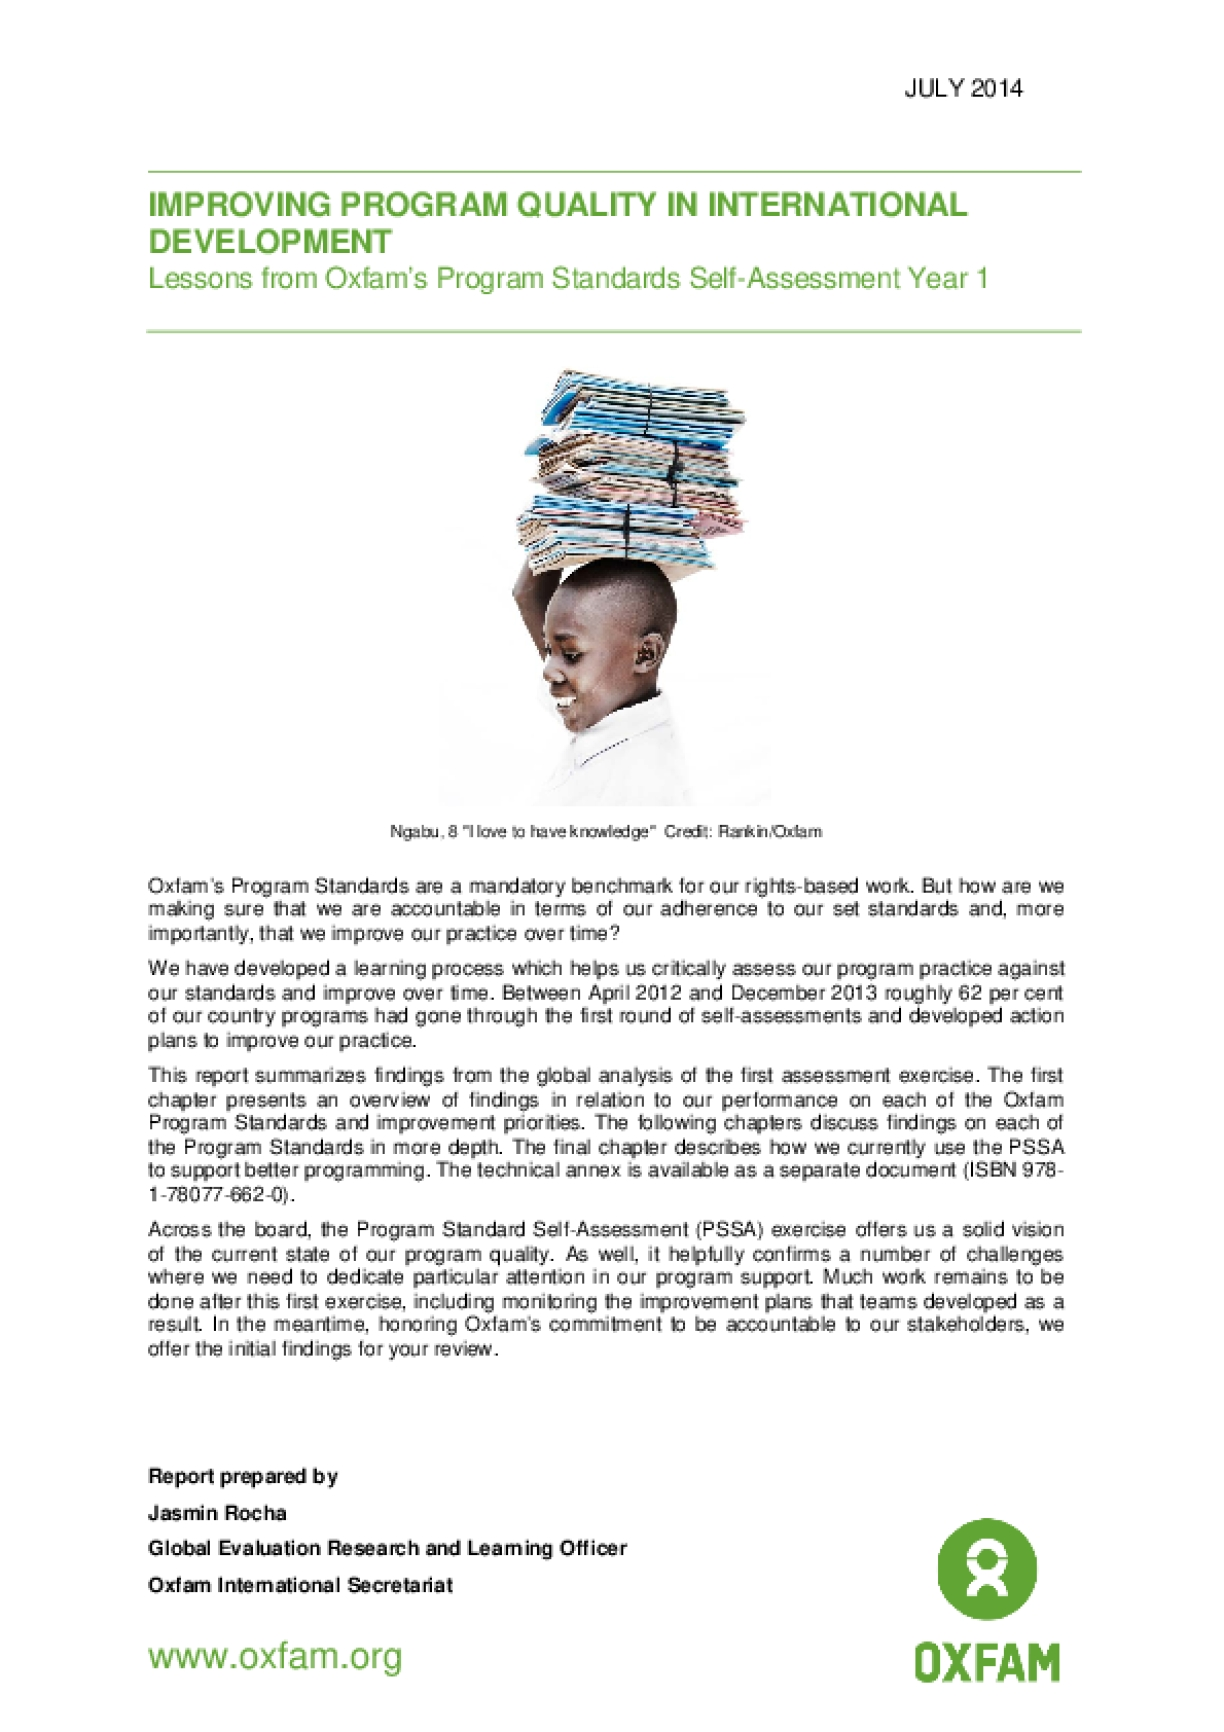 Improving Program Quality in International Development: Lessons from Oxfam's Program Standards Self-Assessment Year 1 main report